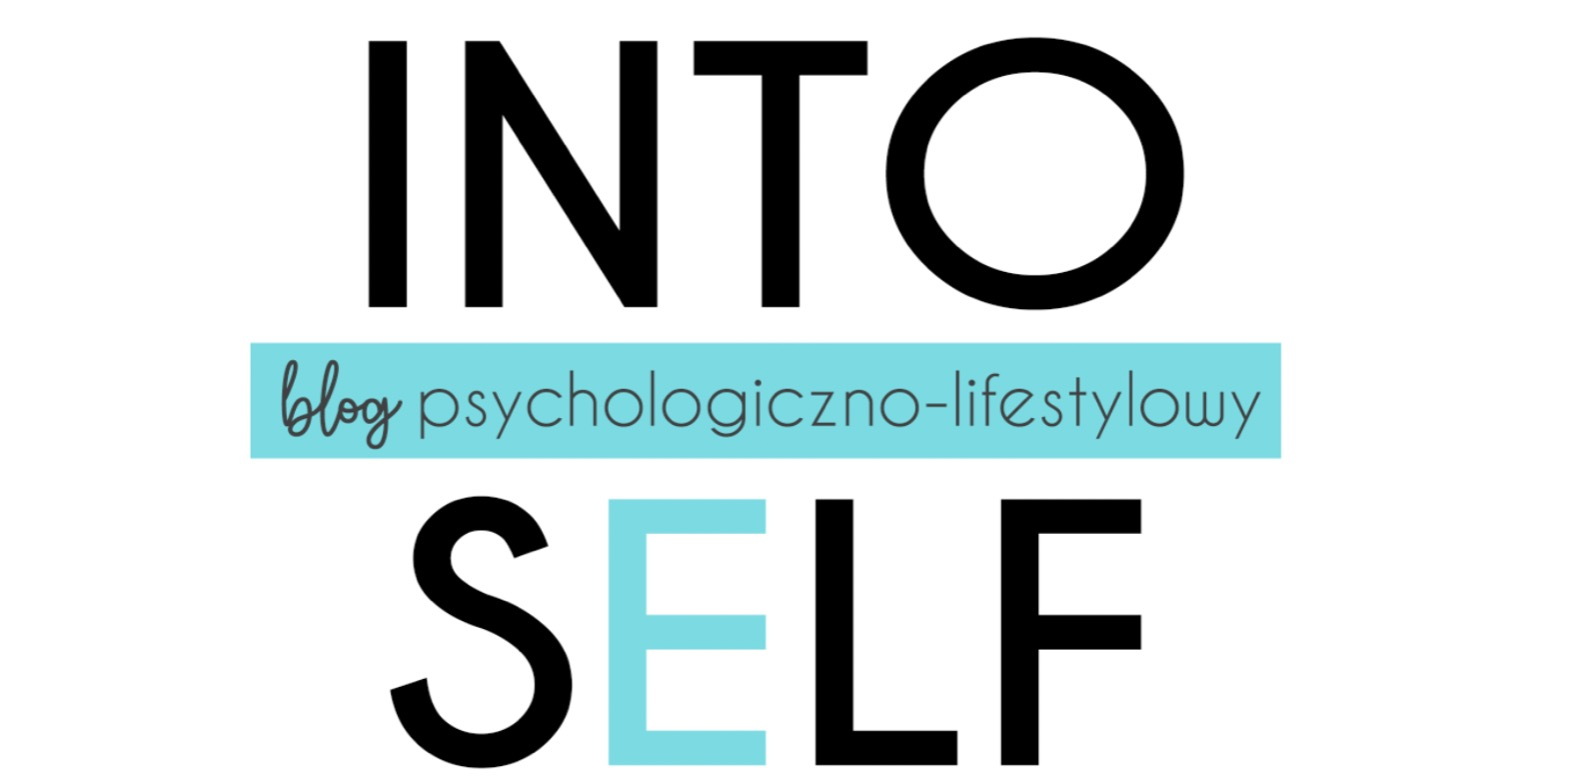 Into self | Blog psychologiczny